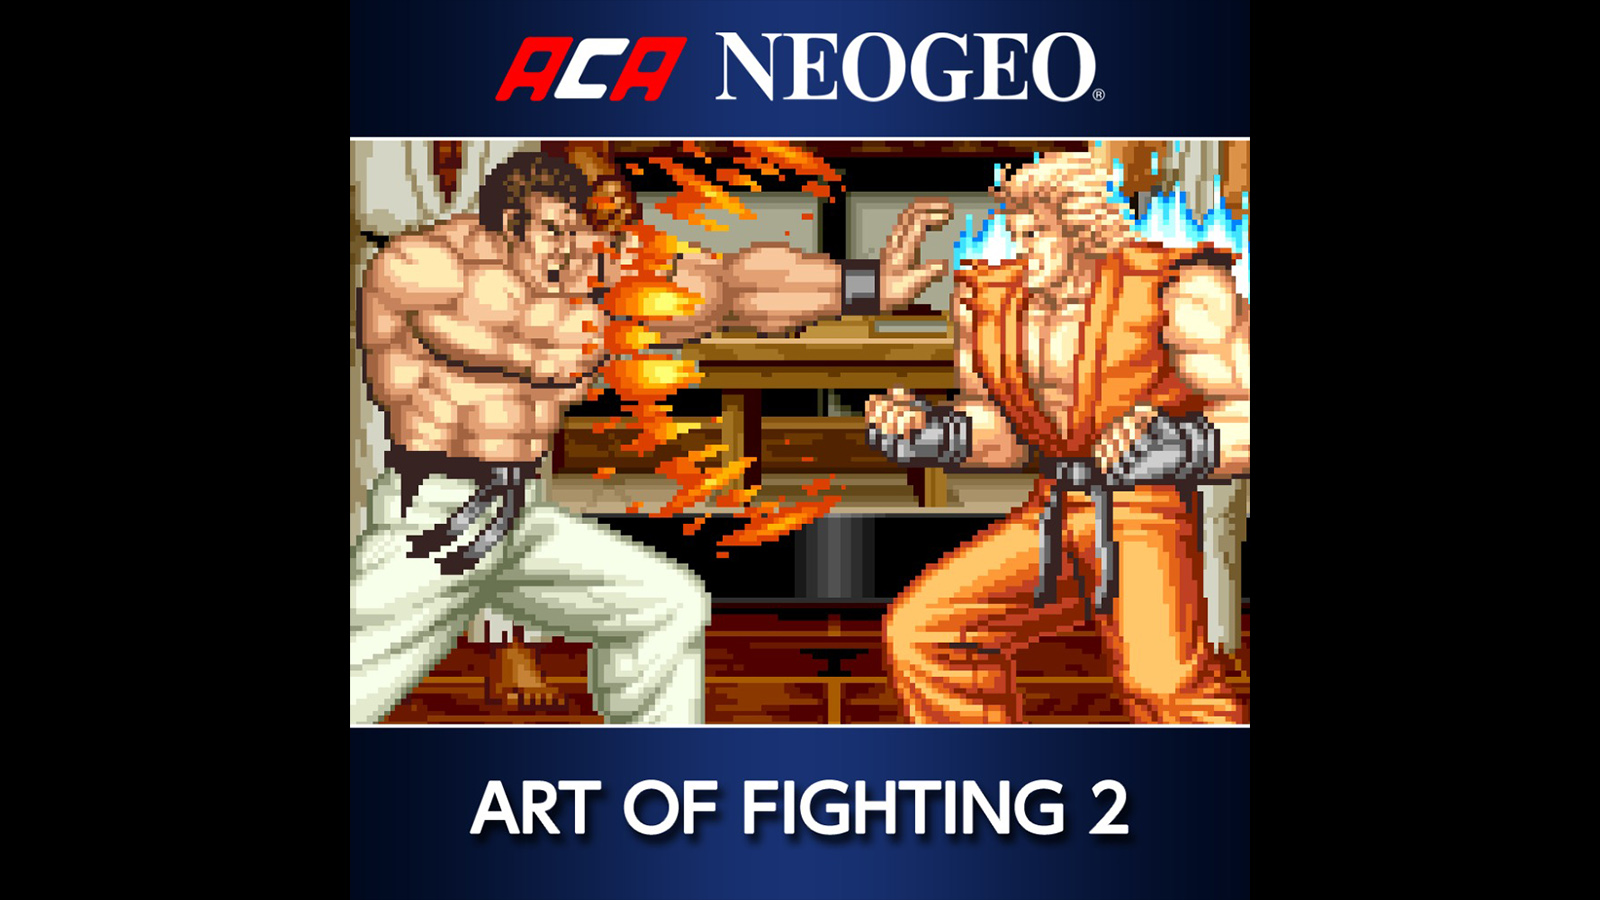 art of fighting 2 wallpaper